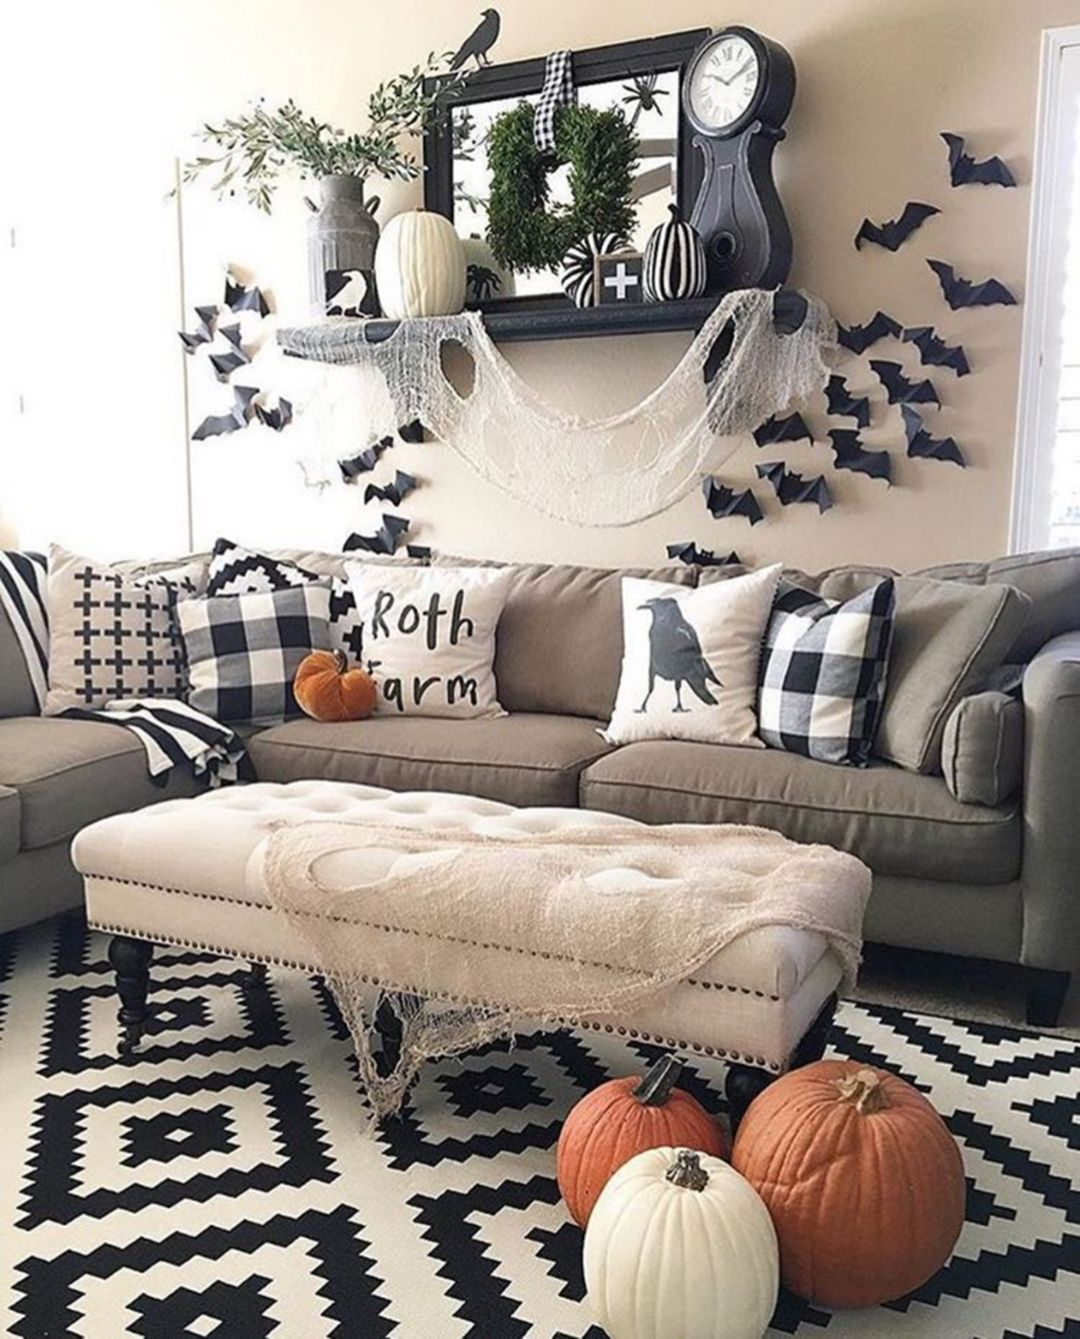 20+ Scary Home Decorations For Halloween